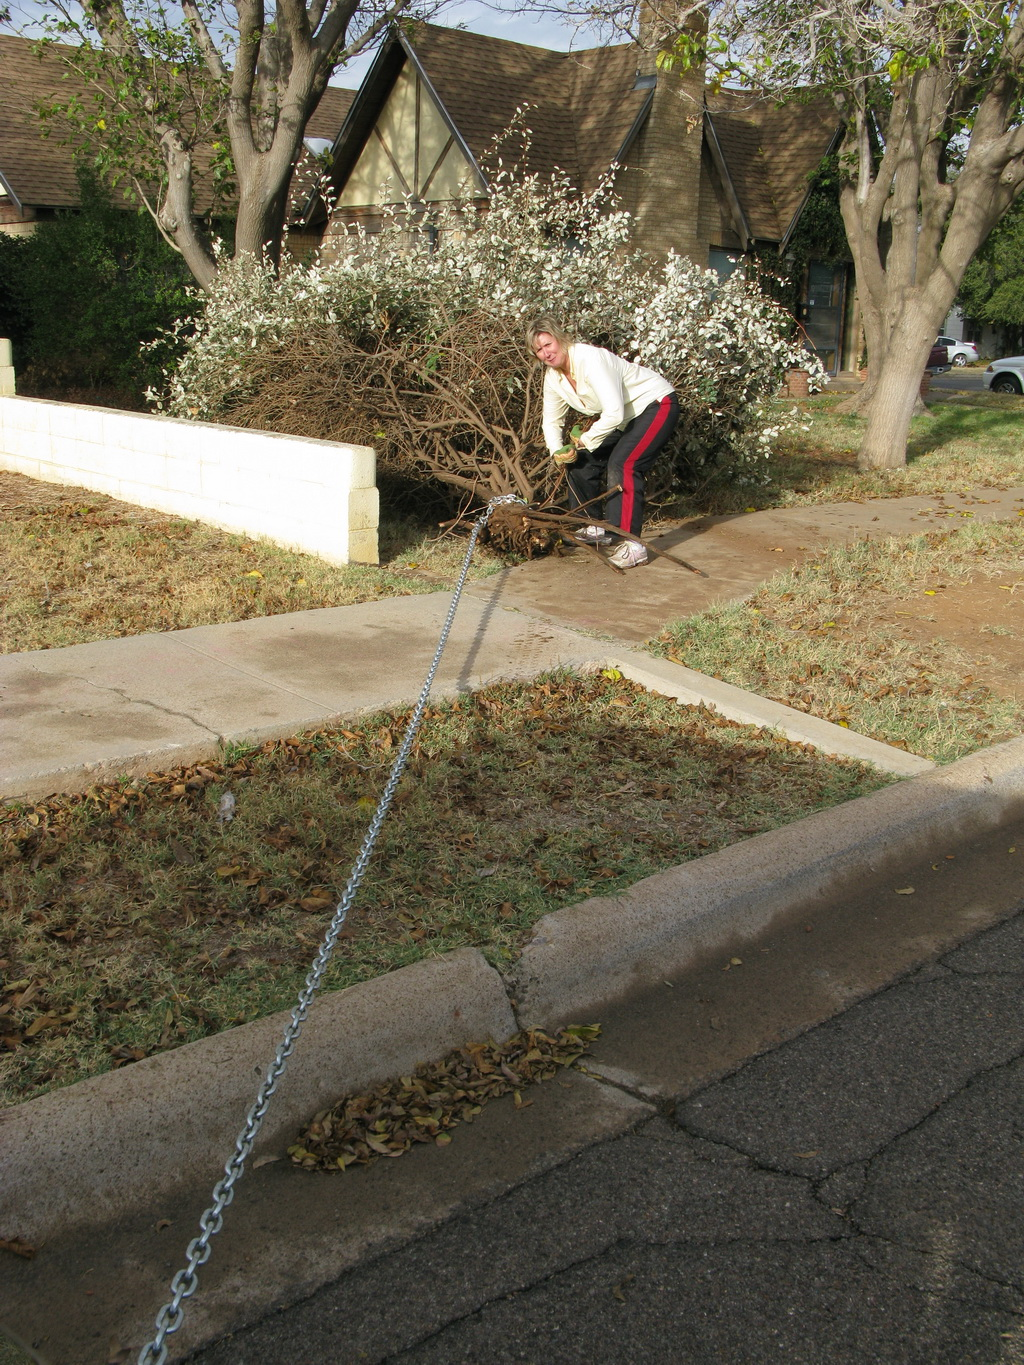 Ann yanking shrubs with truck and chain